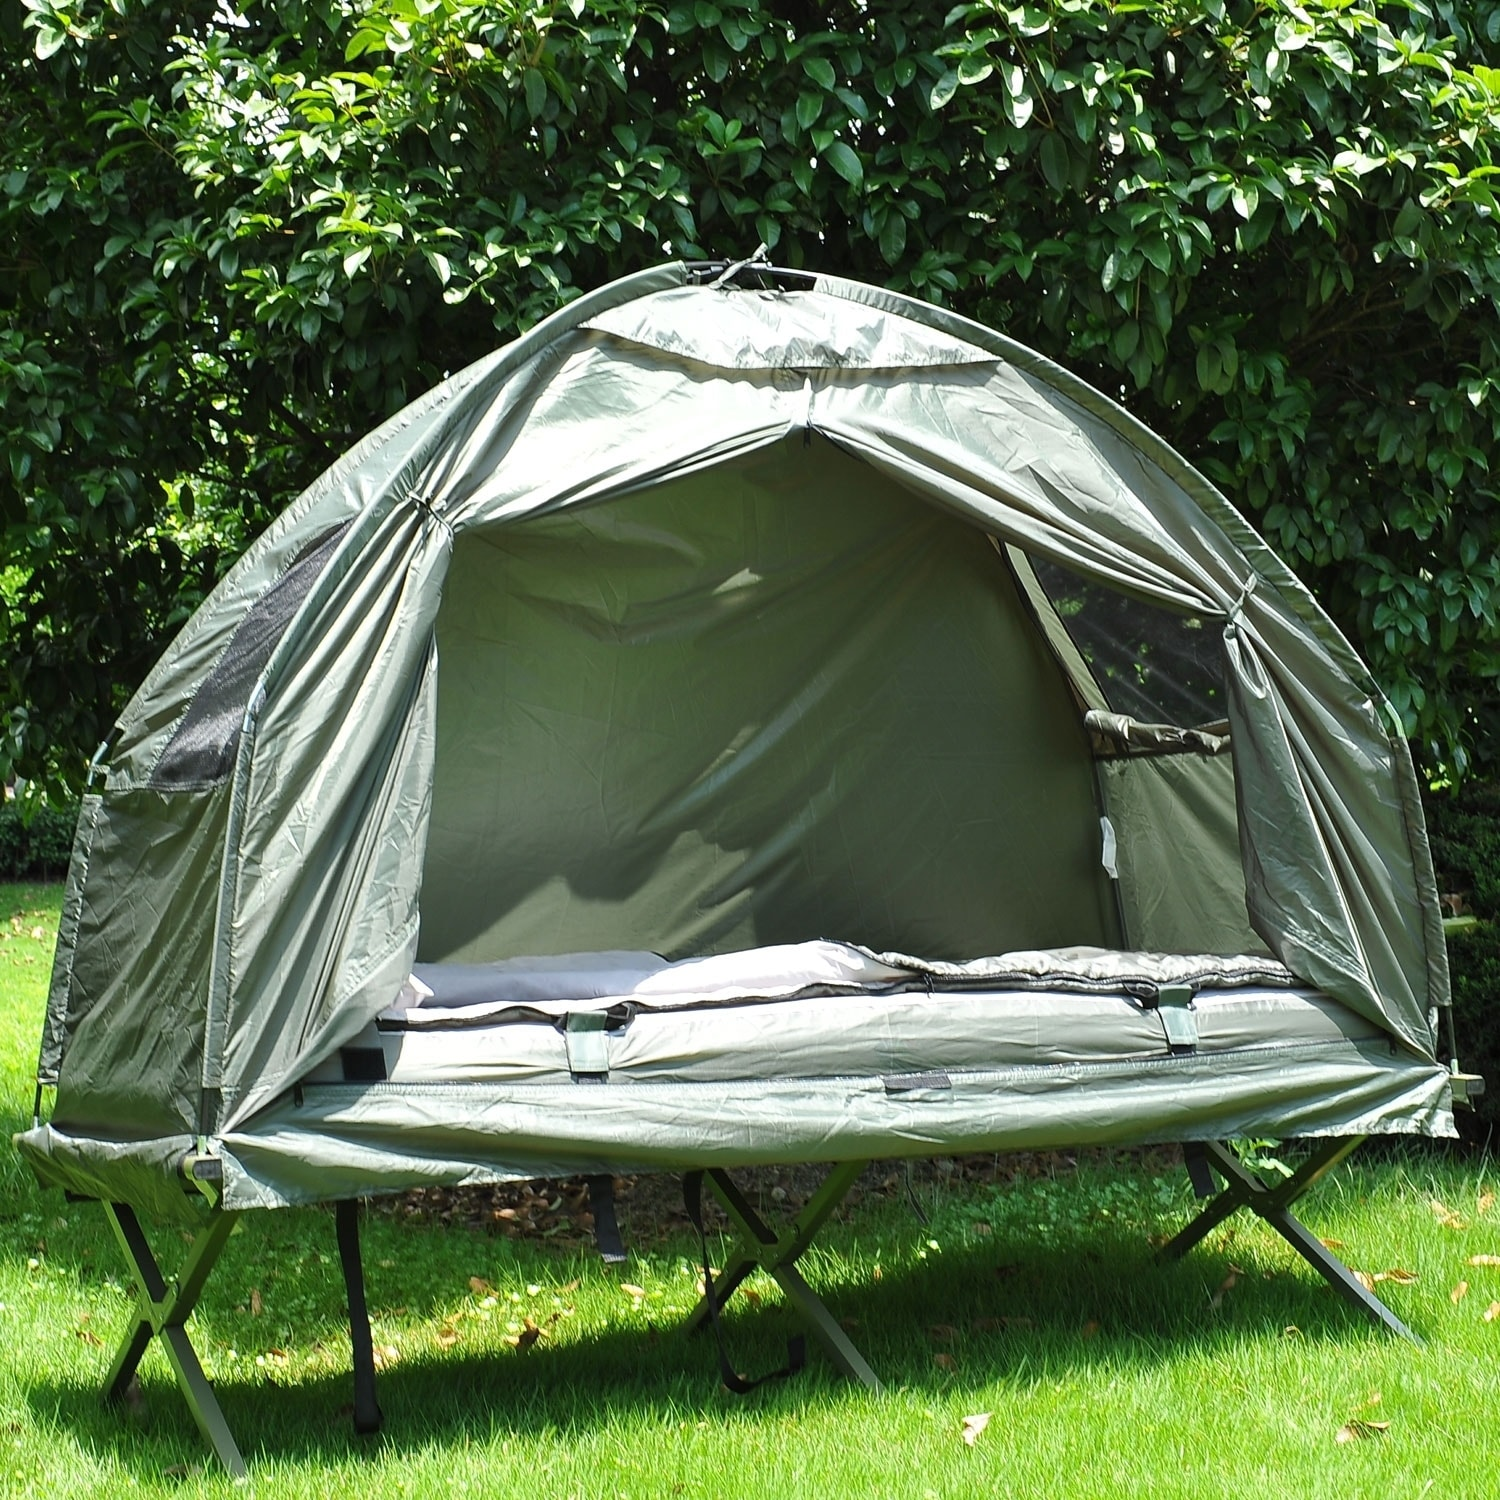 Outsunny Pop Up Tent Cot with Air Mattress and Sleeping Bag Combo - Free Shipping Today - Overstock.com - 24175546 & Outsunny Pop Up Tent Cot with Air Mattress and Sleeping Bag Combo ...